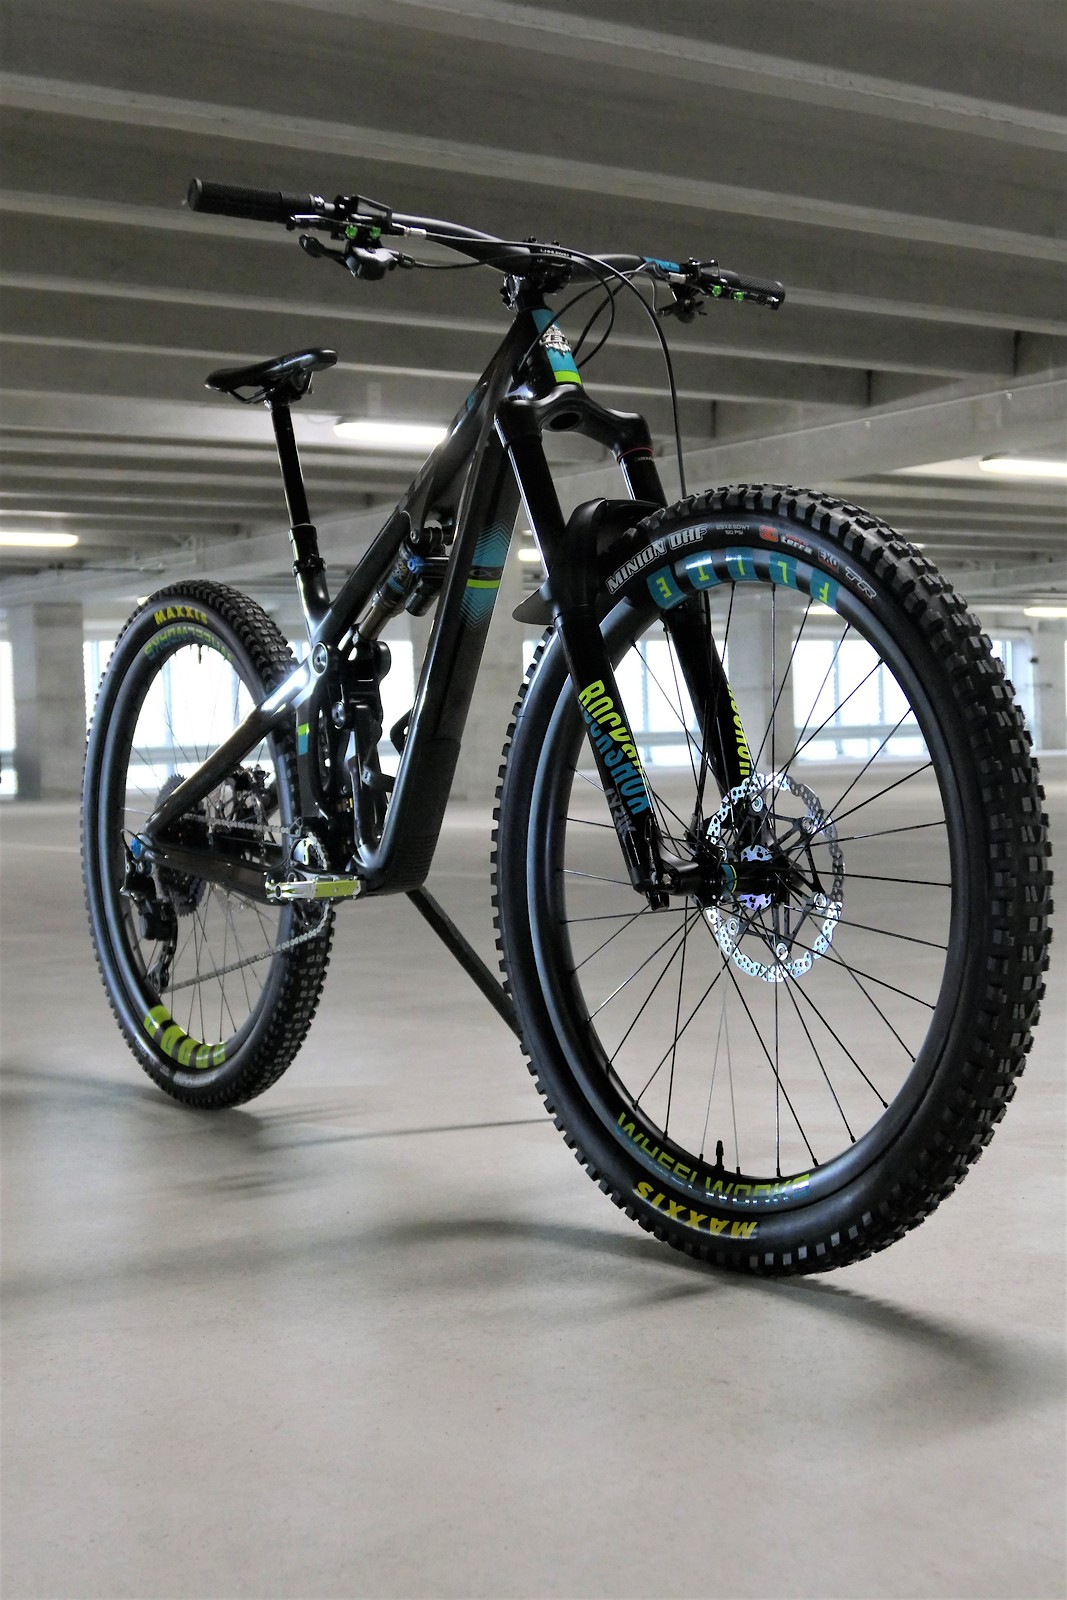 bbf125bc7fa Related: Bike of the Day Enve Composites FOX Hope Technology Maxxis  RockShox Yeti